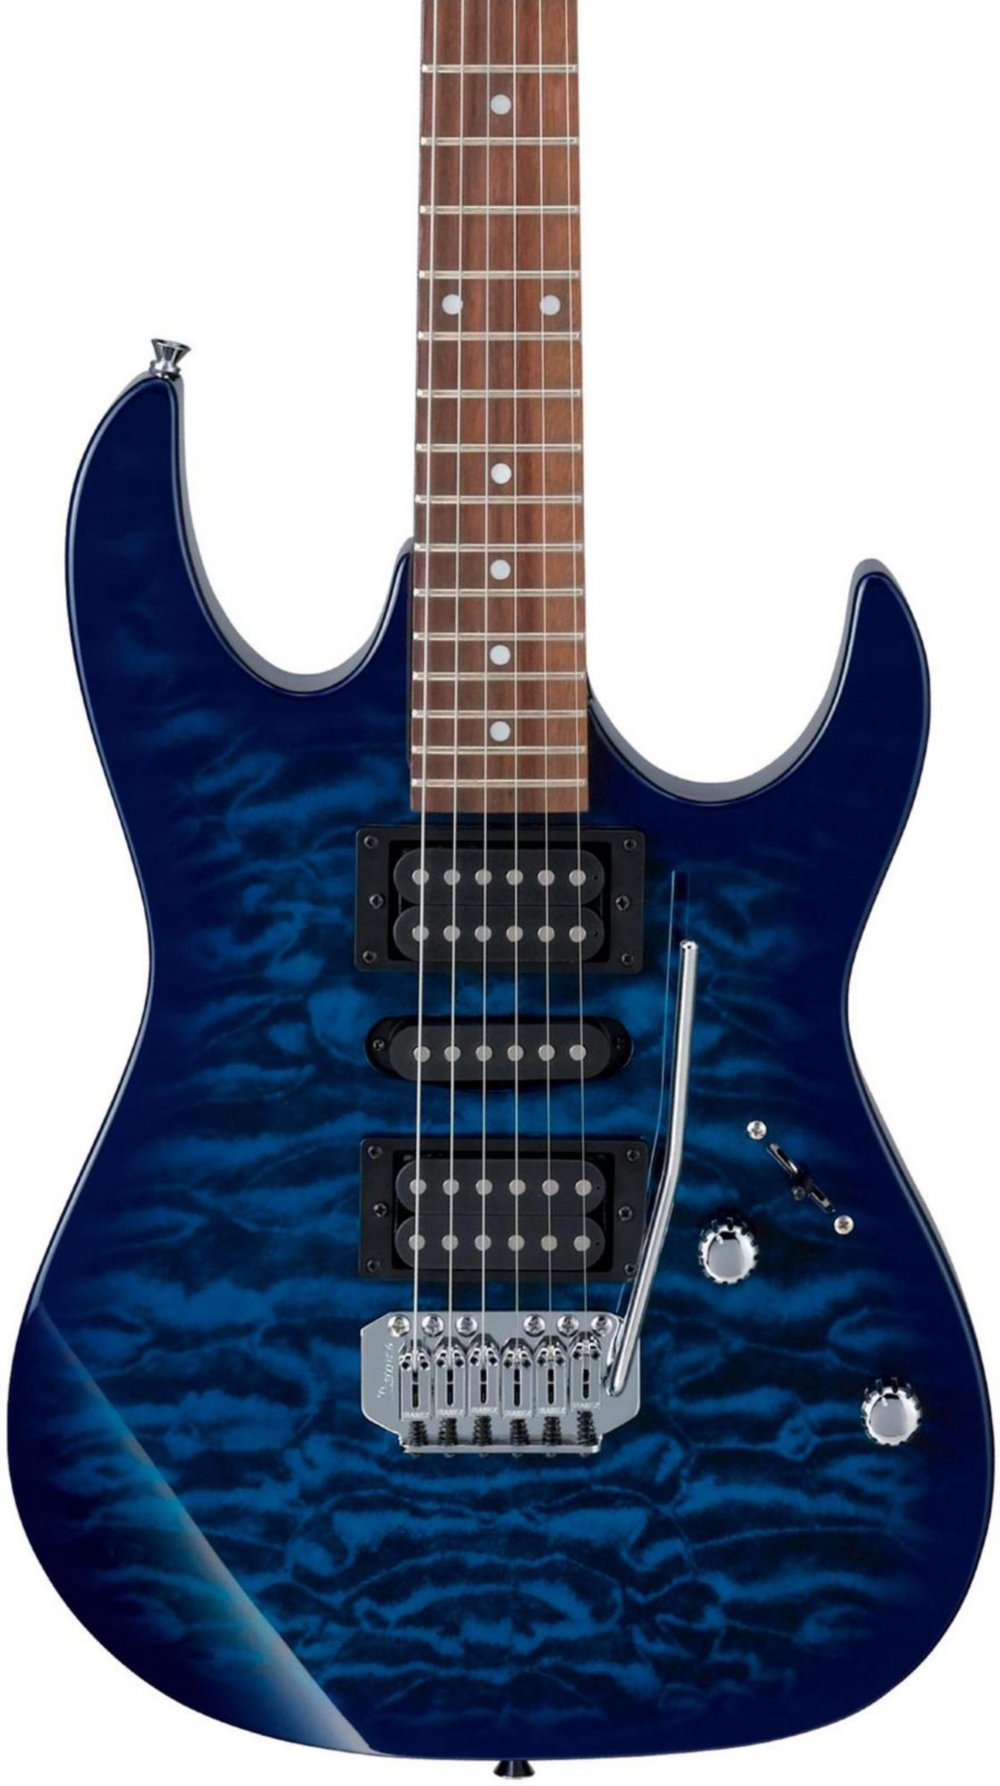 Ibanez 6 String Solid-Body Electric Guitar, Right, Blue (GRX70QATBB) by Ibanez